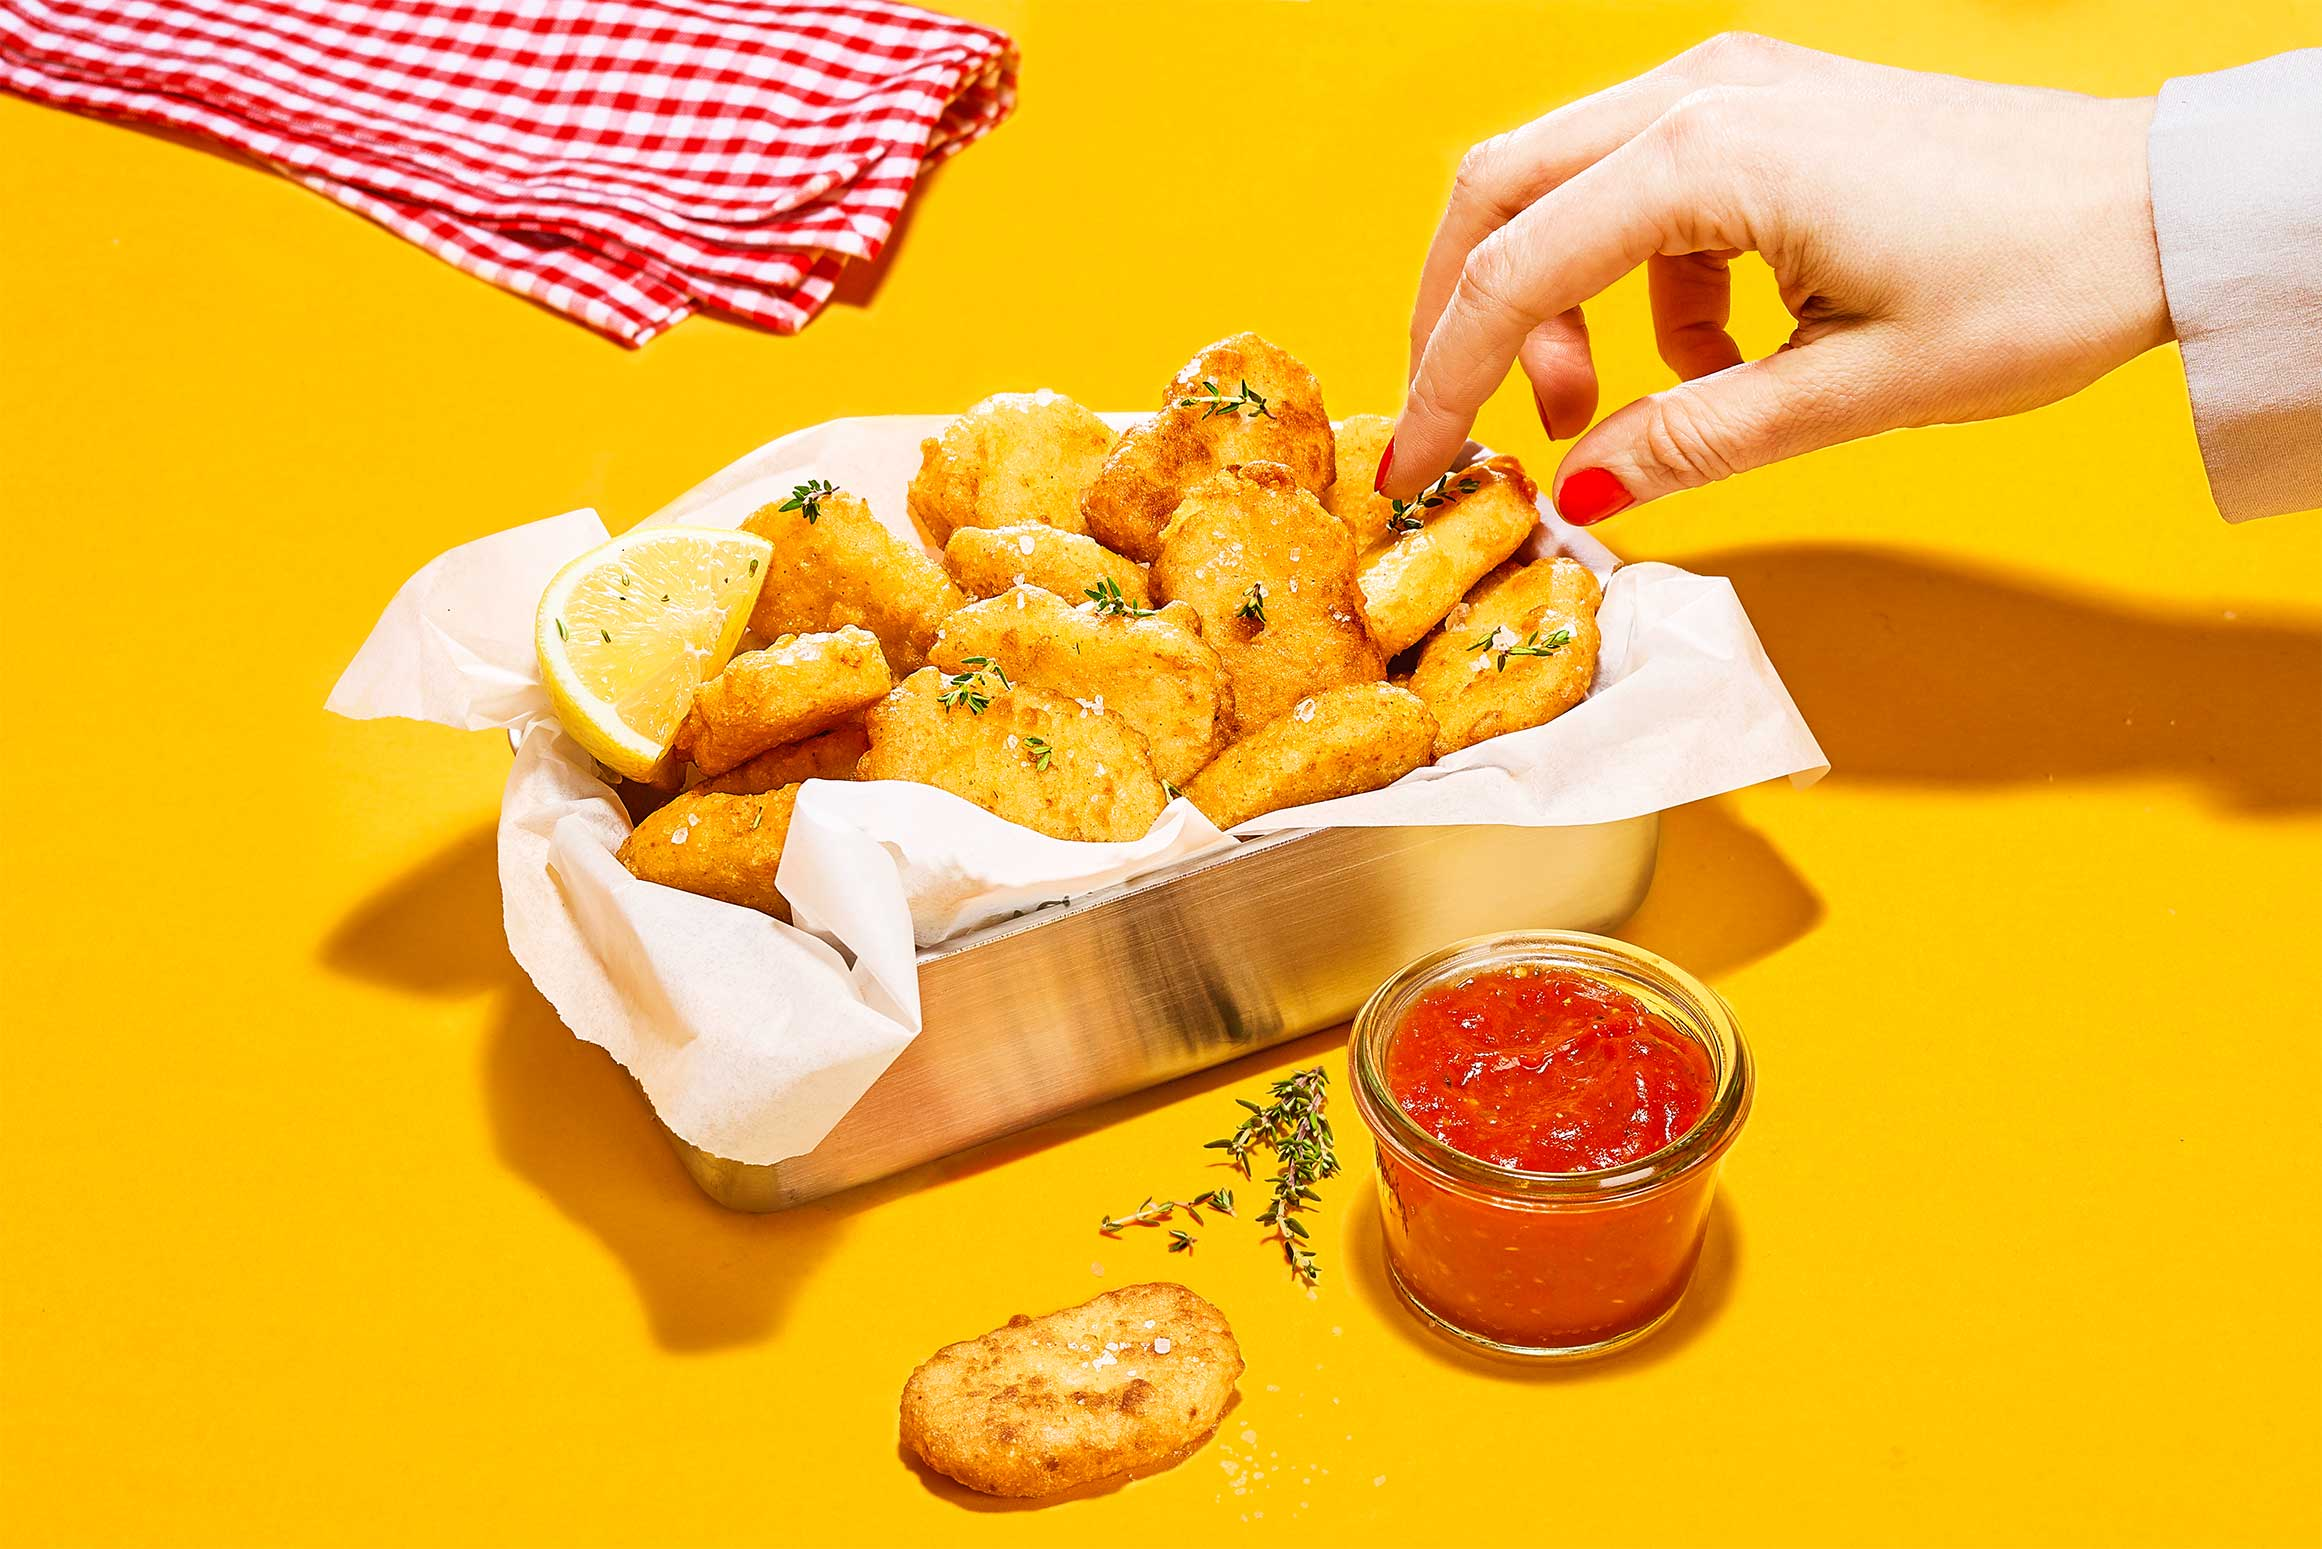 Woman's hand taking a vegeterian nugget made of beans out of a box to dip it in tomate sauce red blanket in the background yellow Food commercial photography artificial light Philipp Burkart photographer in Hamburg